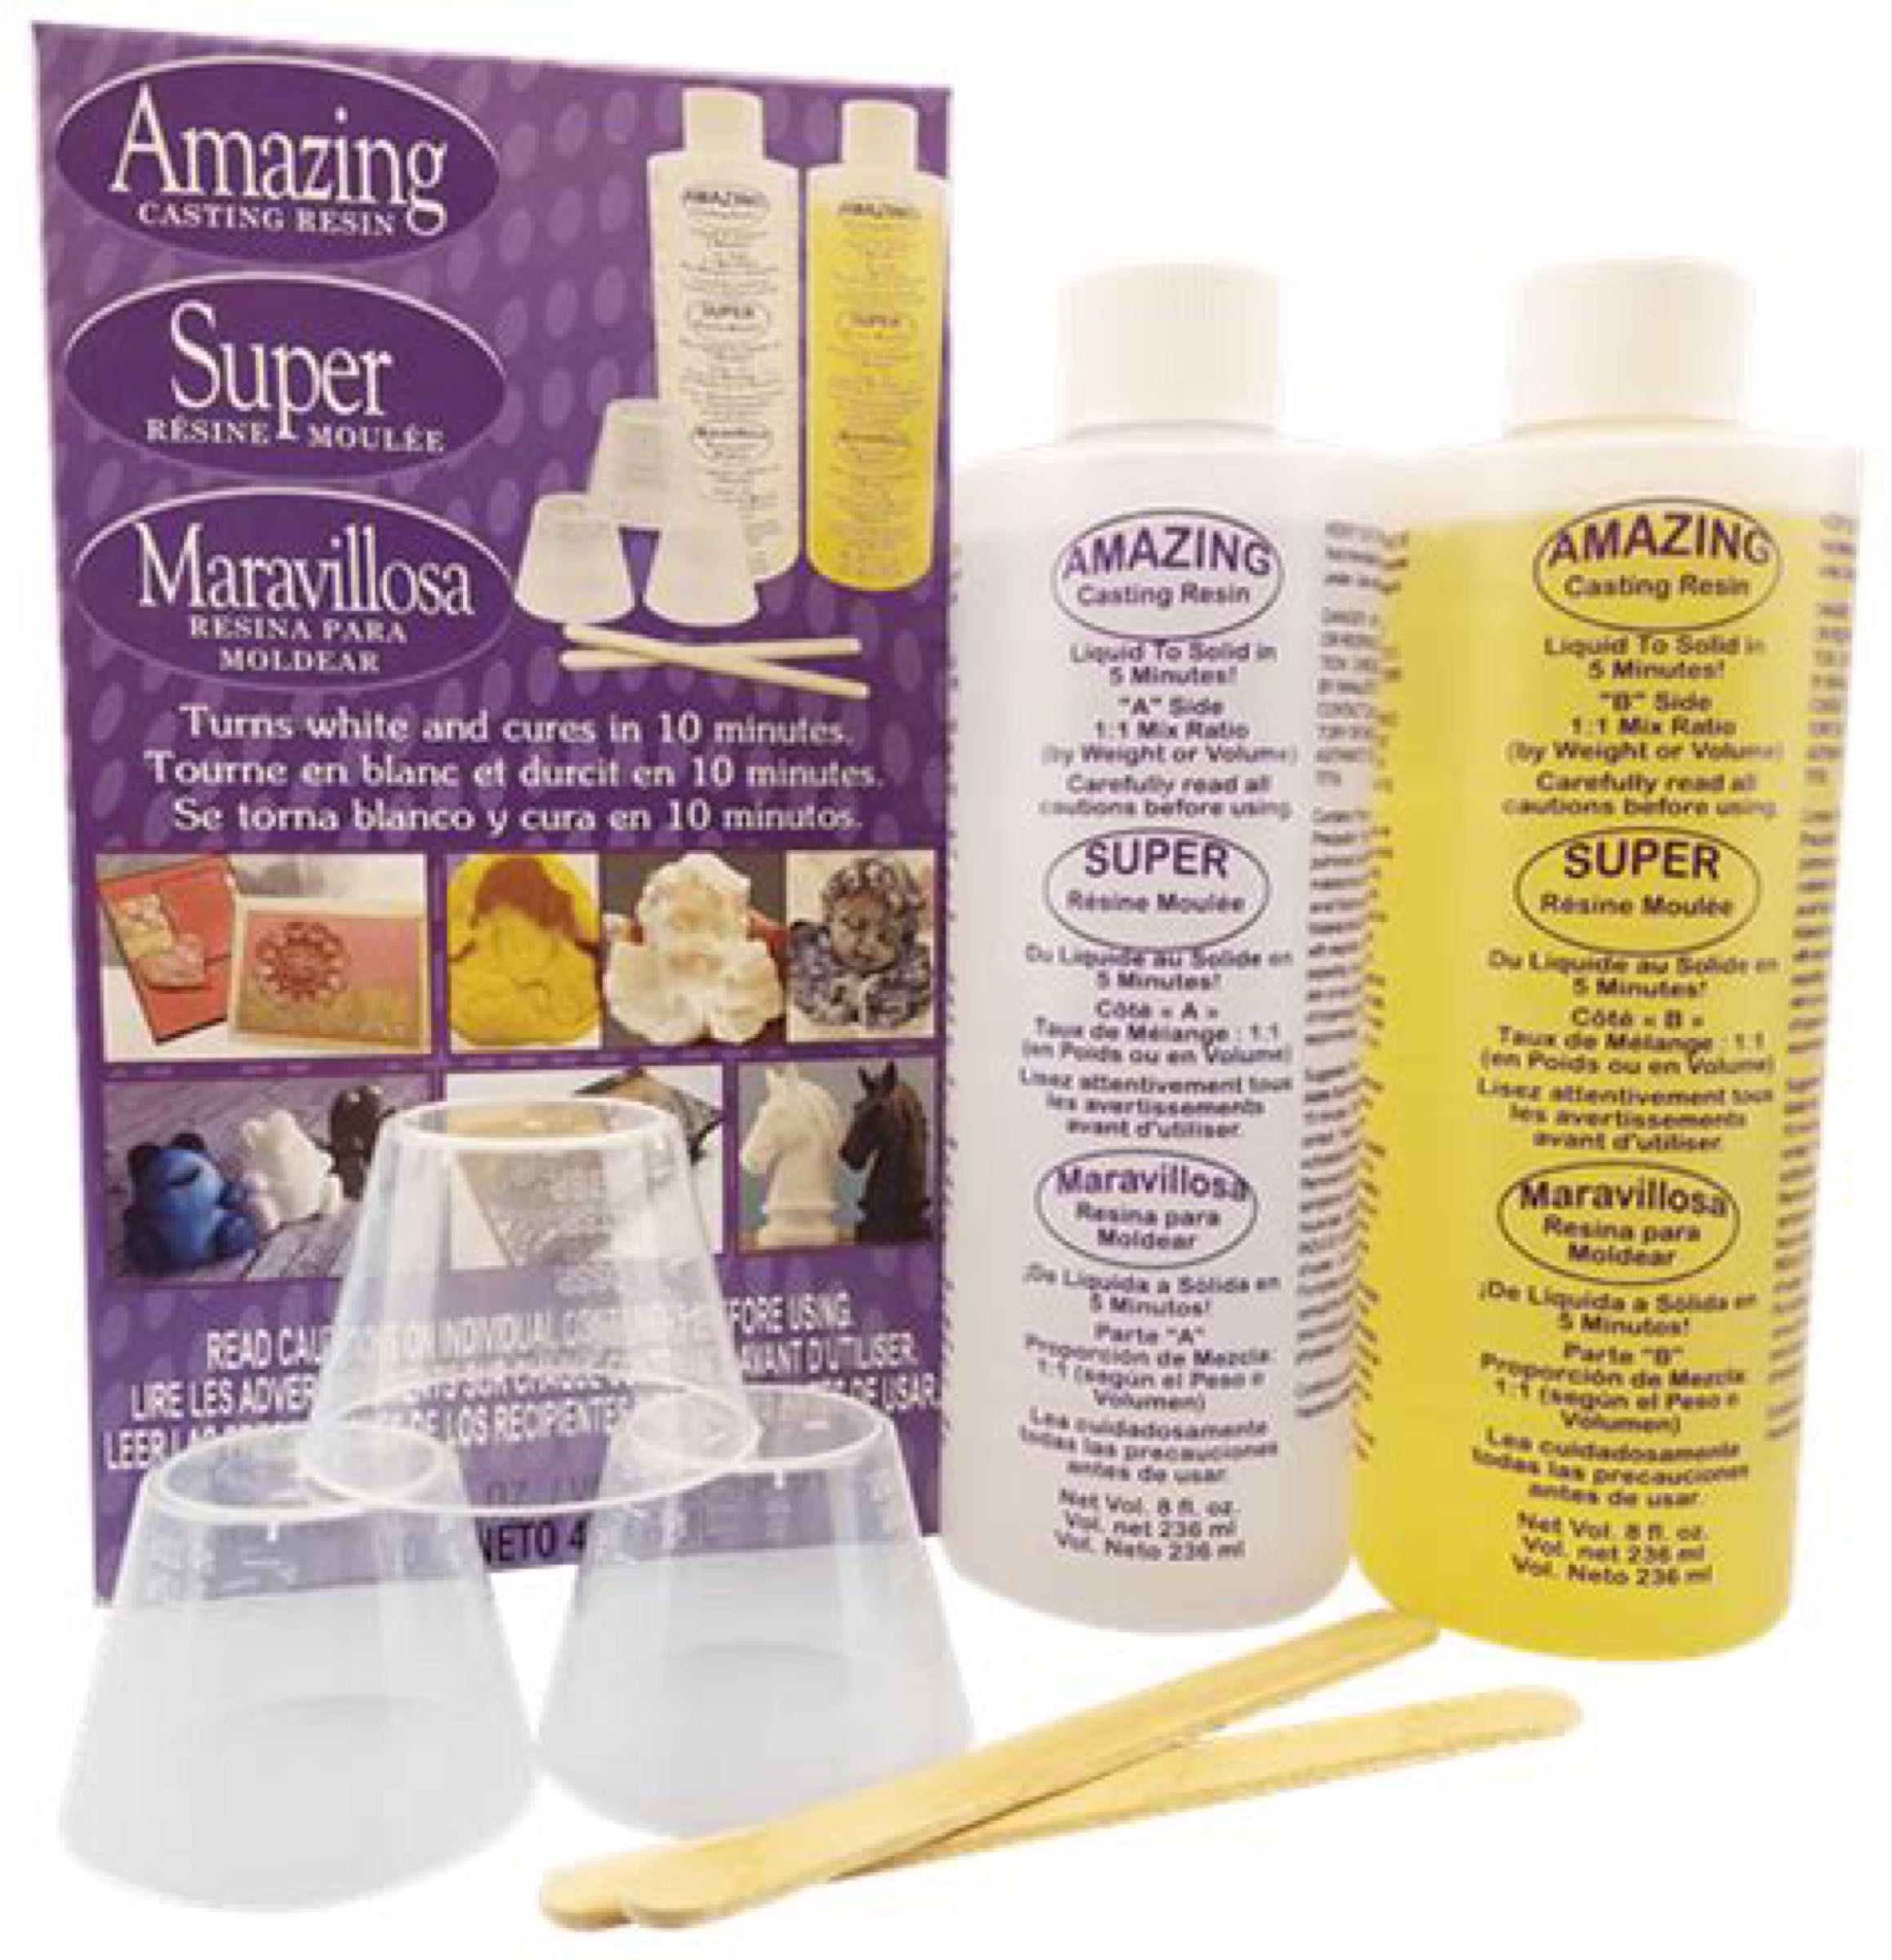 Amazing Casting Resin Kit 16oz (2 part 8oz each) - White